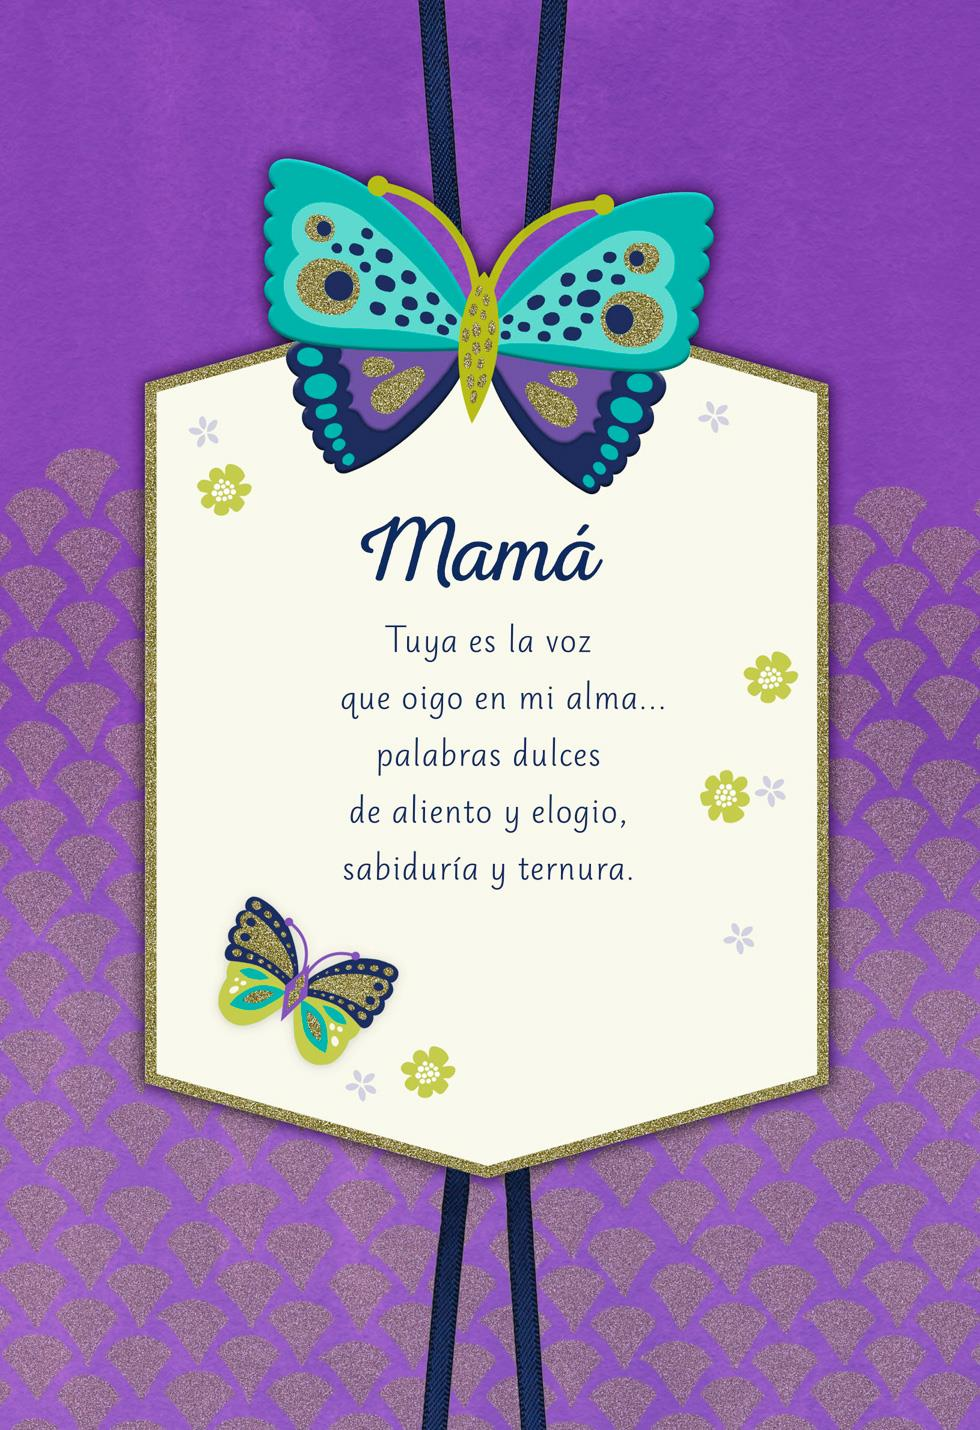 Your Voice Spanish Language Birthday Card For Mom Greeting Cards